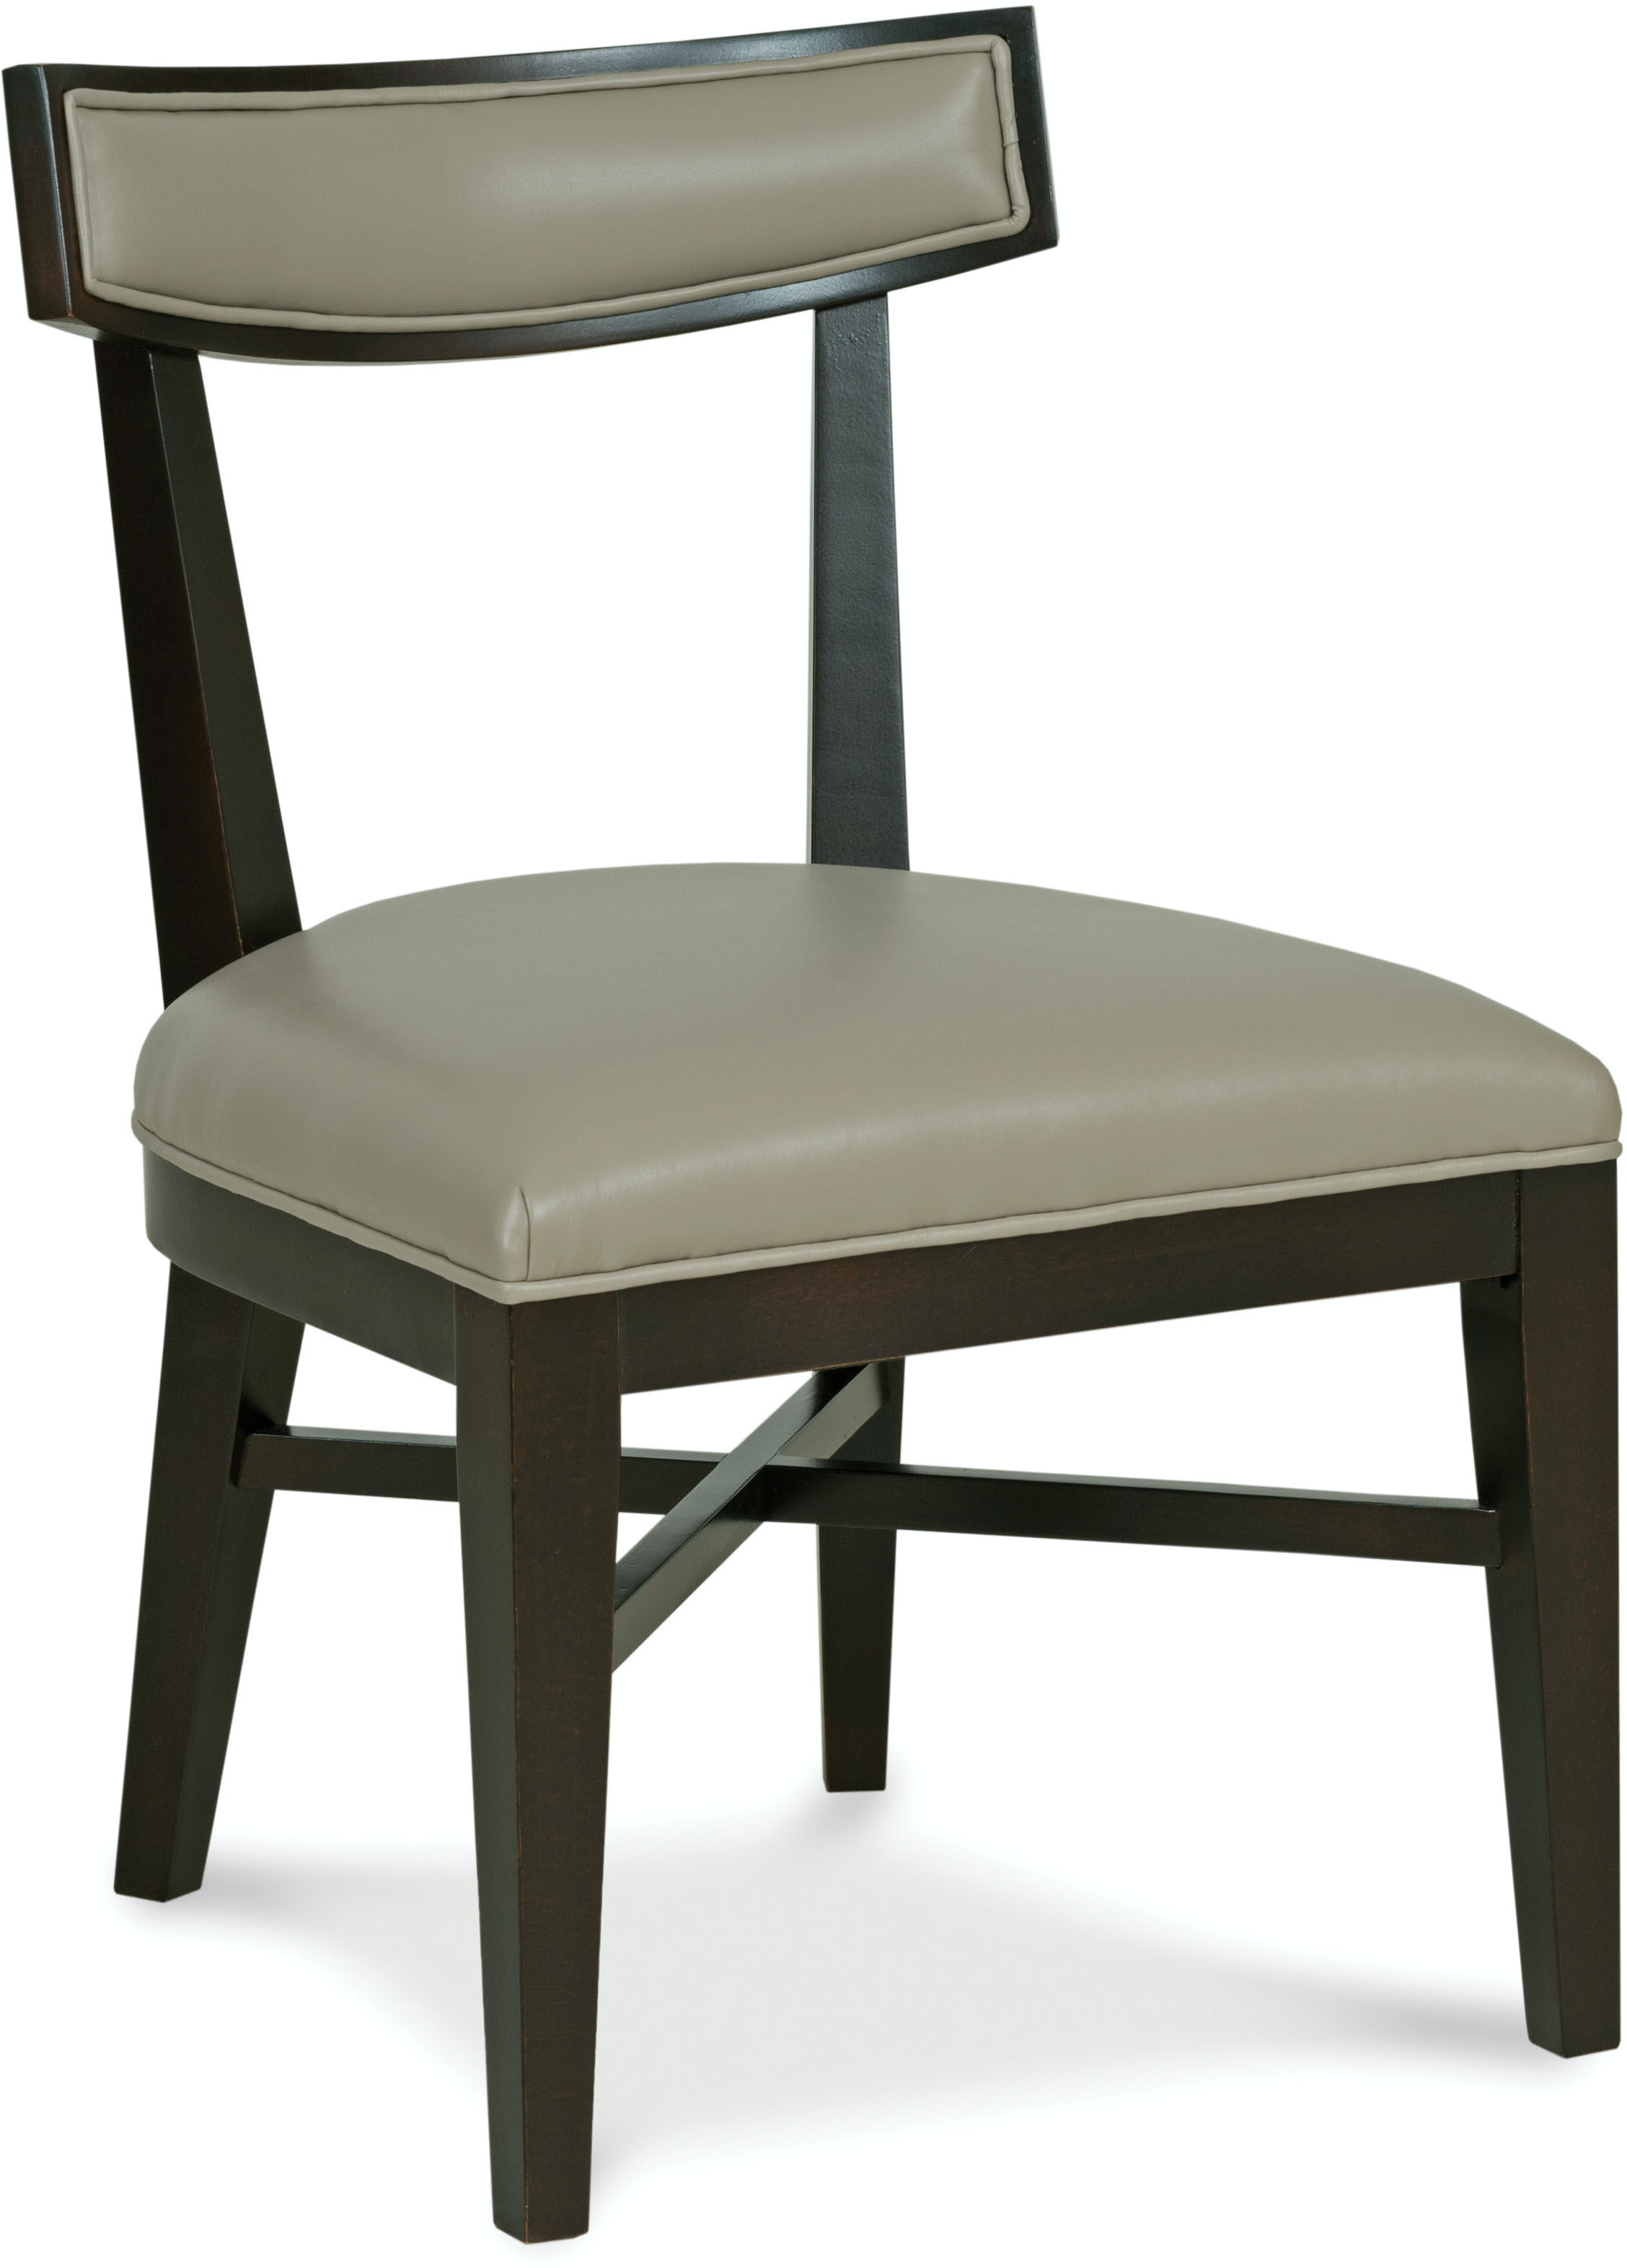 Fairfield Chair pany Dining Room Occasional Side Chair 8729 05